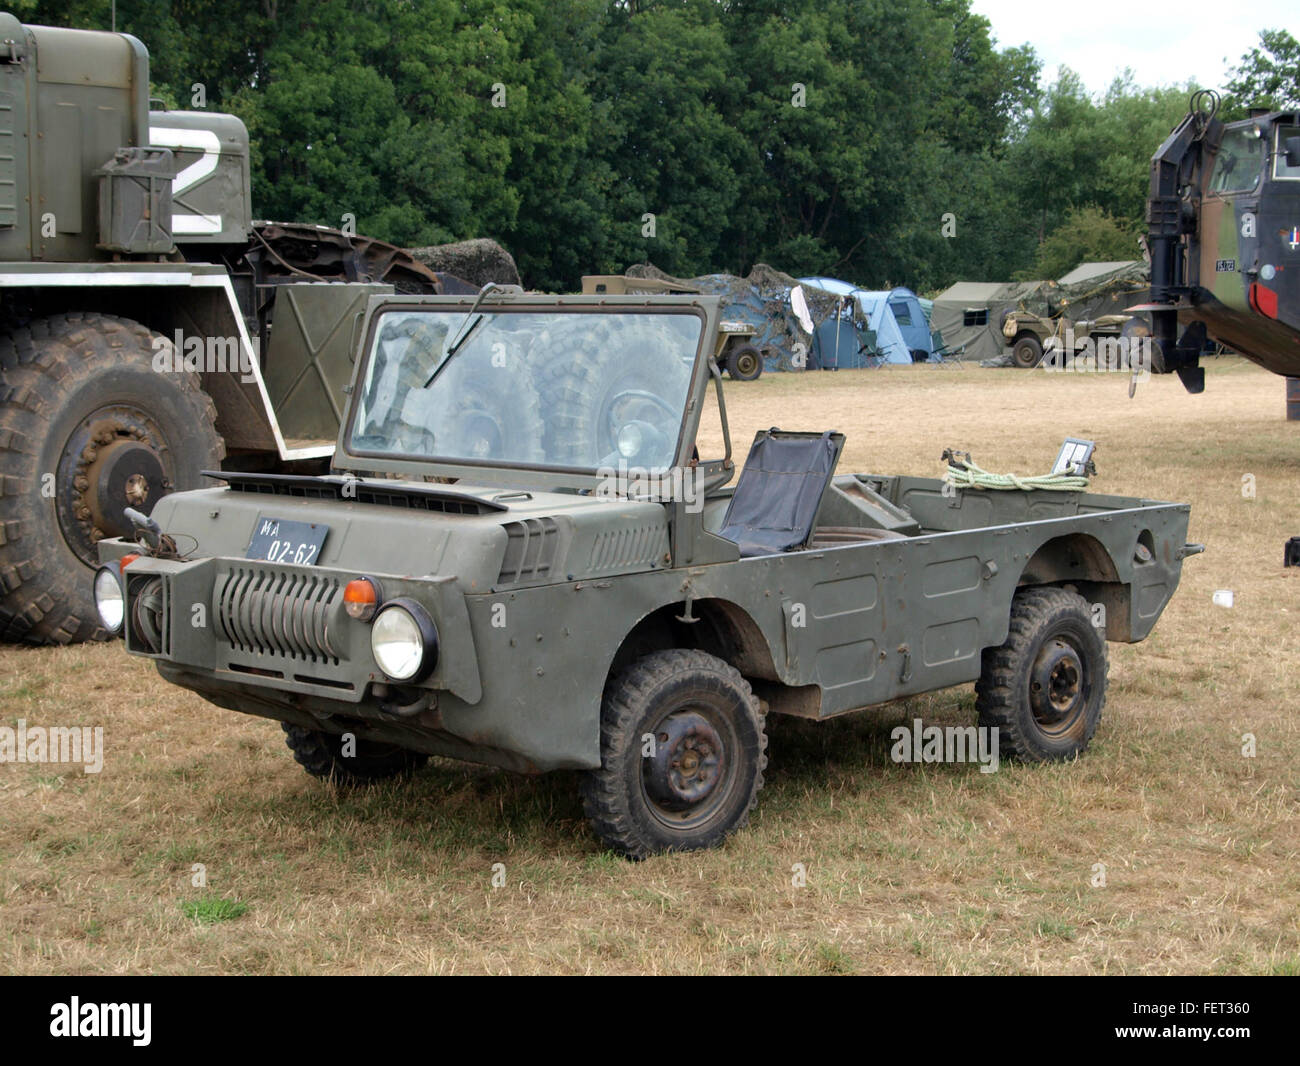 LUAZ 967 M amphibious military vehicle pic2